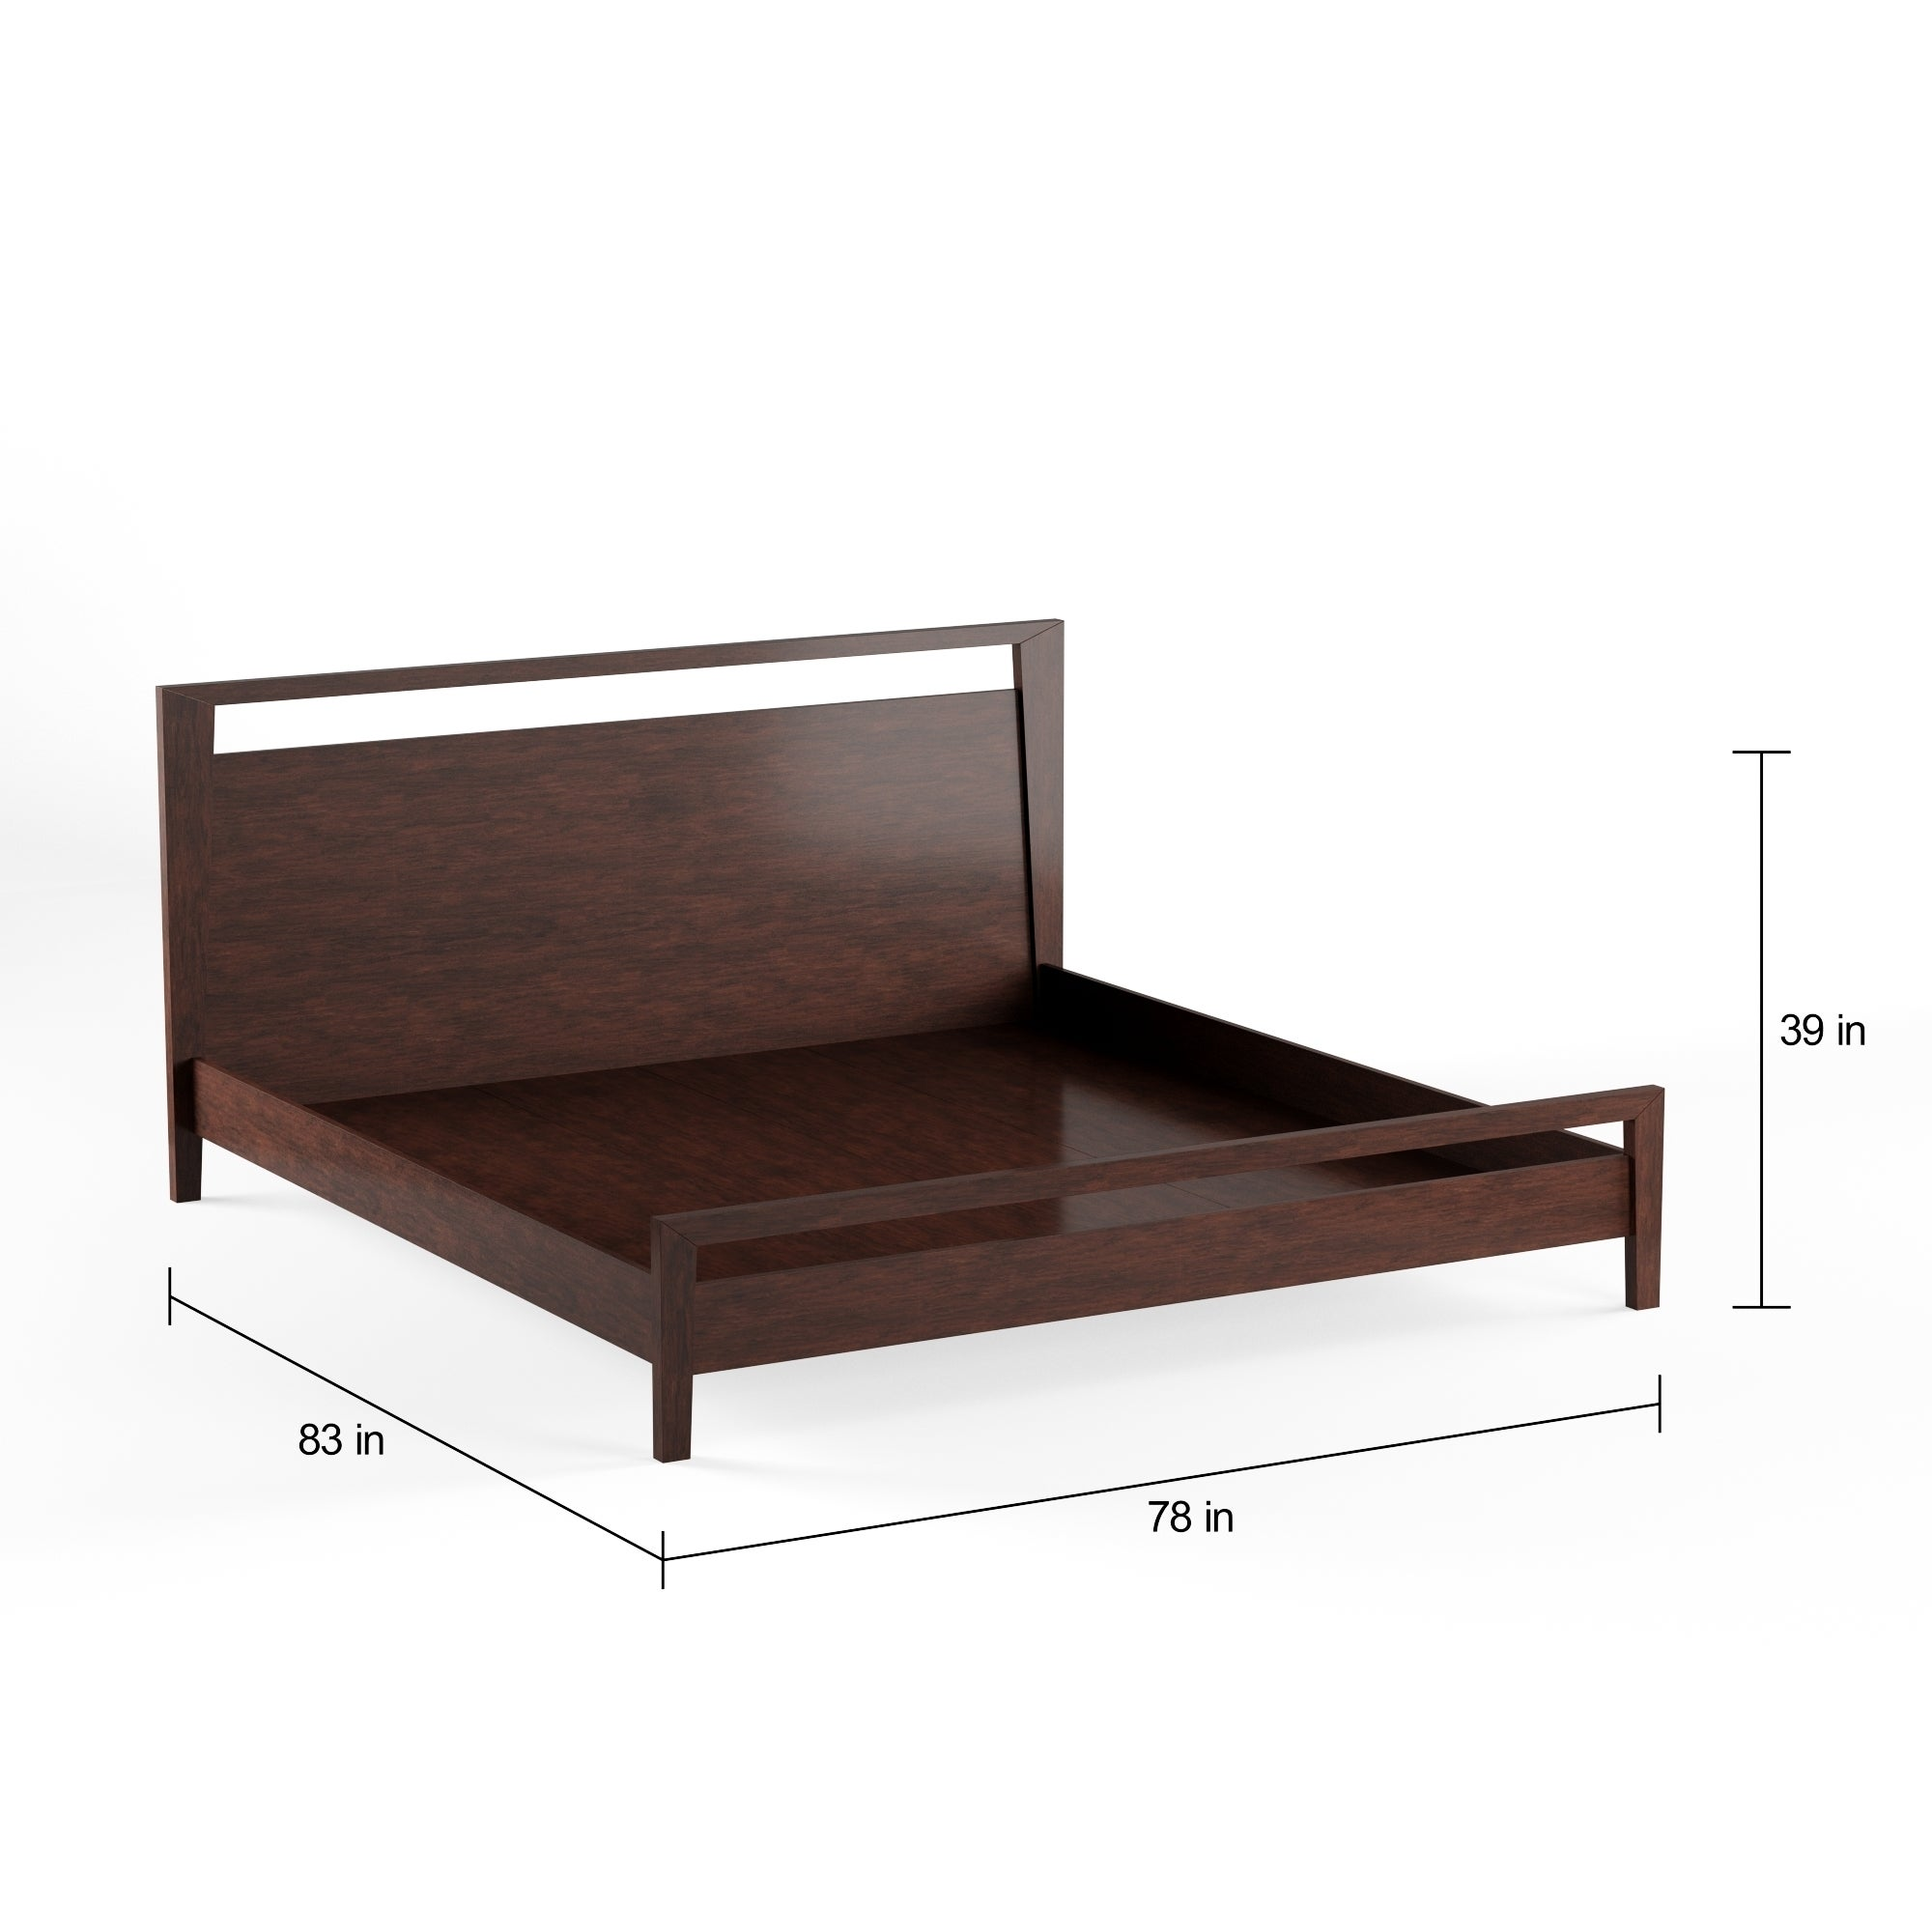 headboard wooden interesting platform size drawer drawers elegant diy bedframe brown and picture famous queen full with floor storage design bed white on laminated placed of